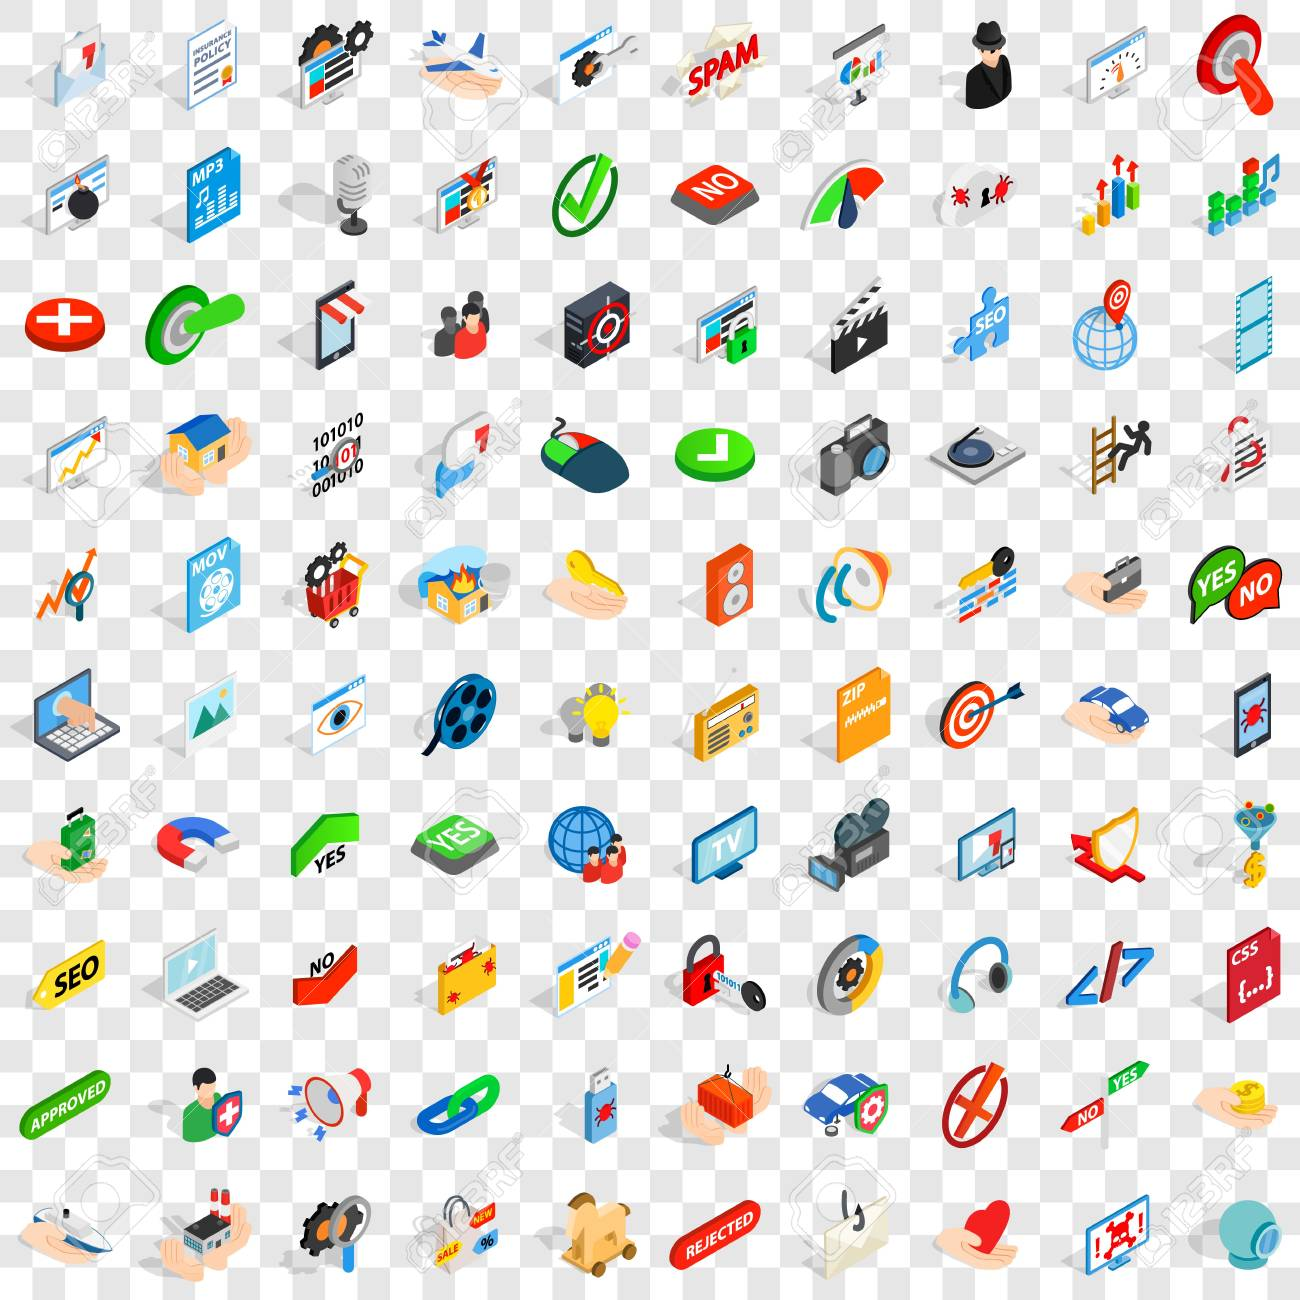 100 cyber icons set in isometric 3d style for any design vector illustration - 83398549